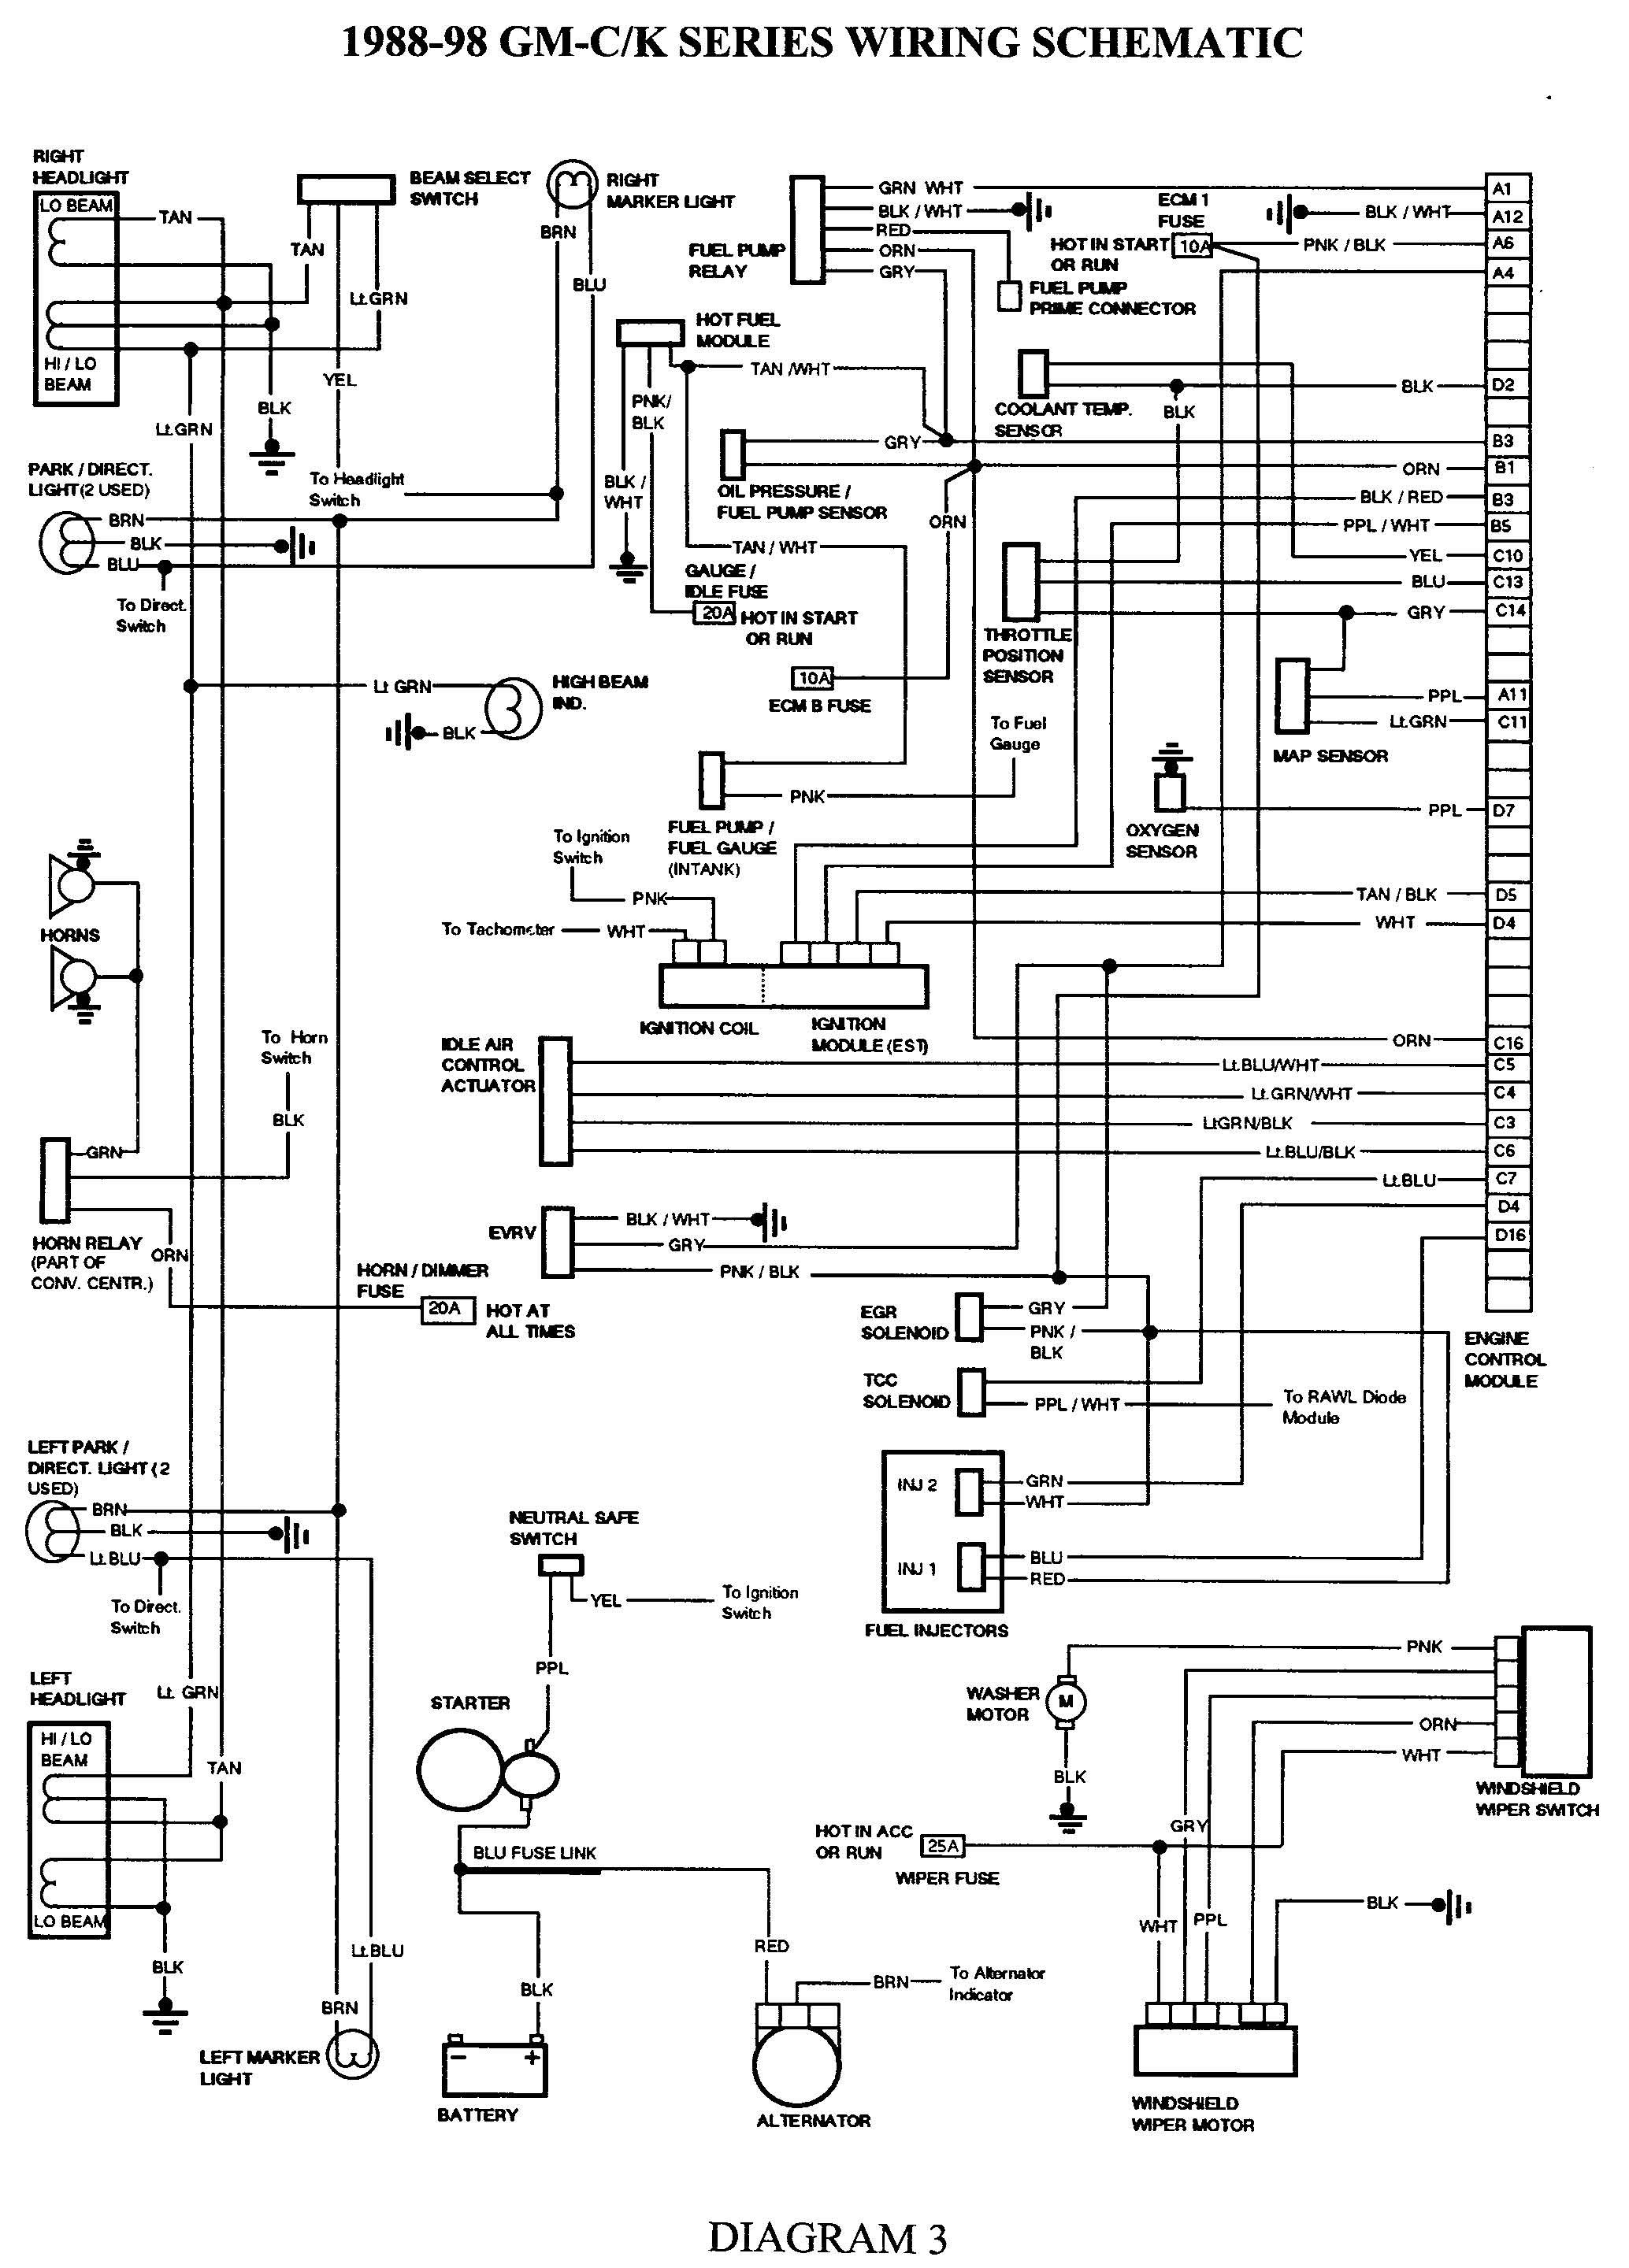 gmc truck wiring diagrams on gm wiring harness diagram 88 98 kc 1992 gmc sierra wiring diagram gmc truck wiring diagrams on gm wiring harness diagram 88 98